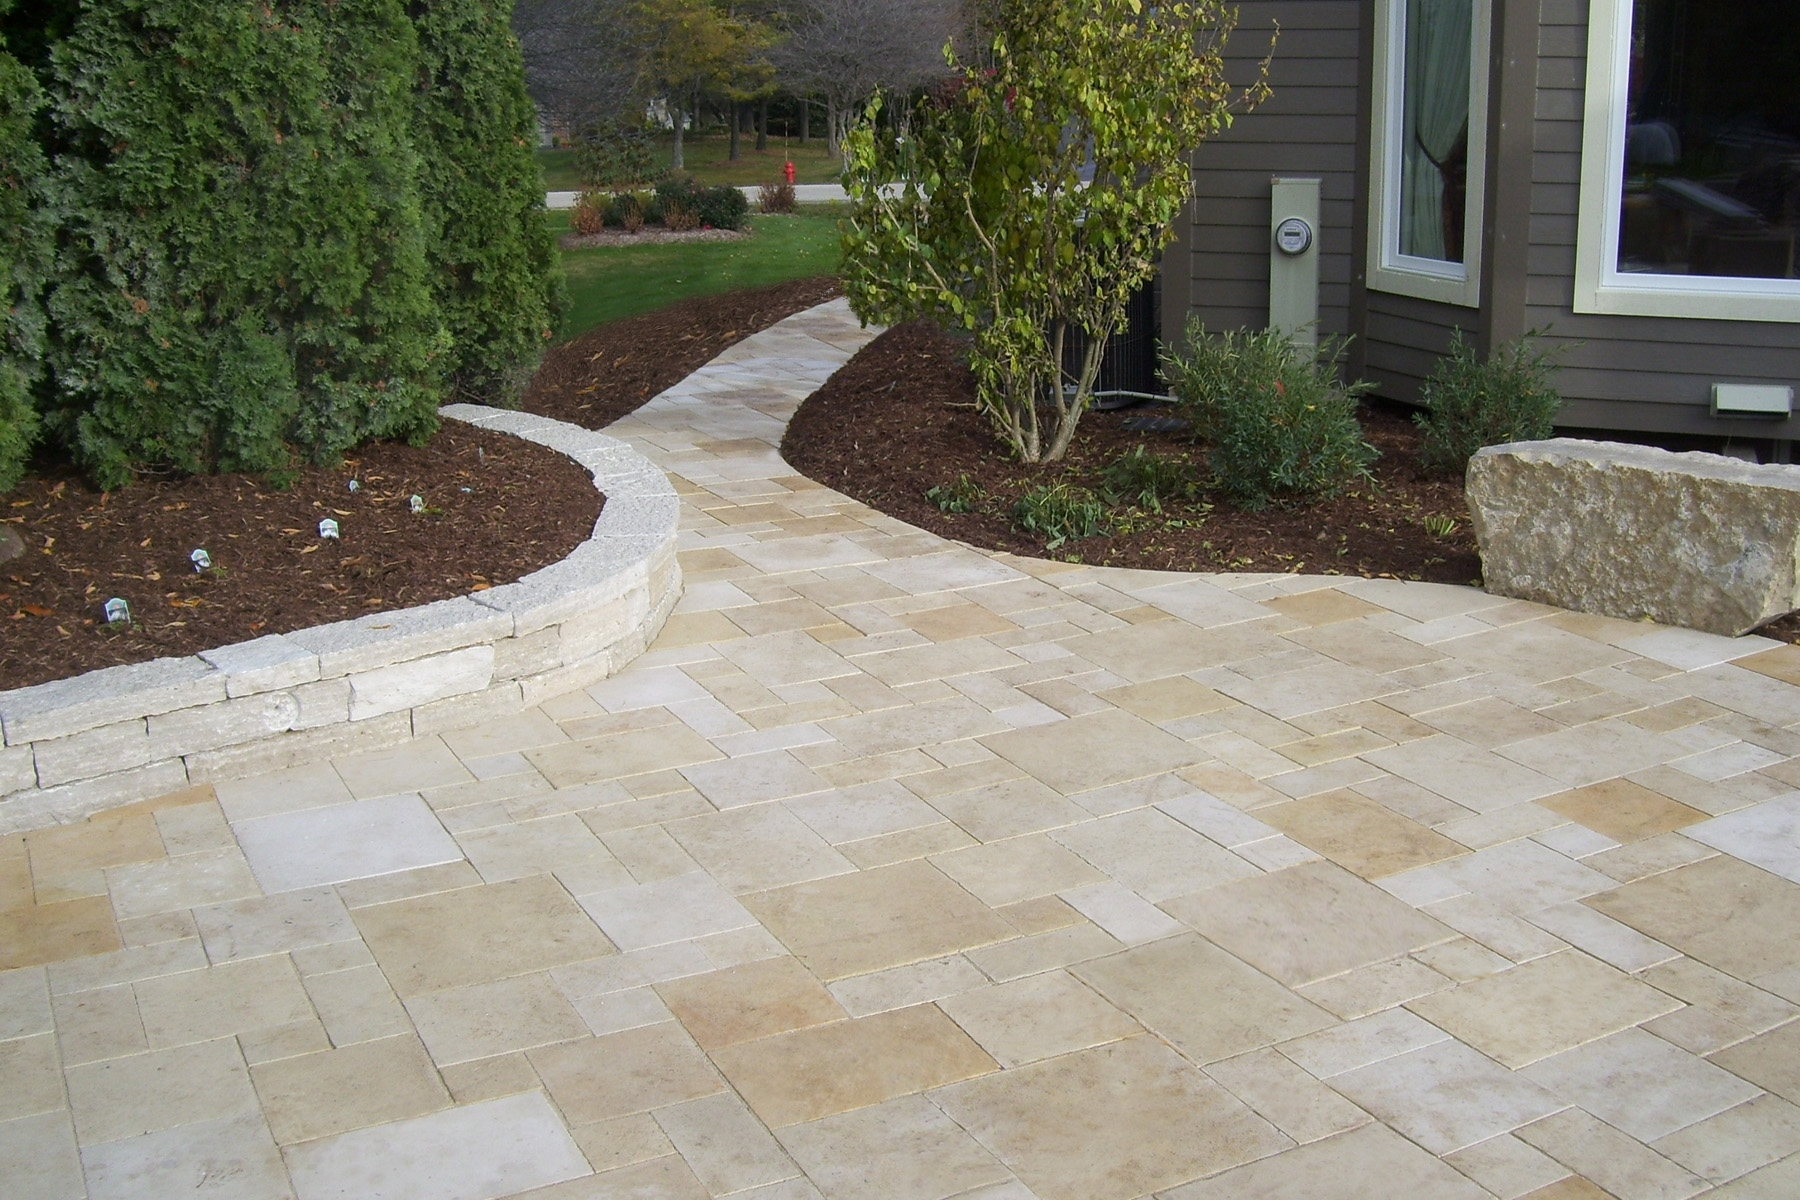 Valders Rustic Pavers Lurvey Landscape Supply Inside Landscaping Pavers Easy Steps To Install Landscaping Pavers